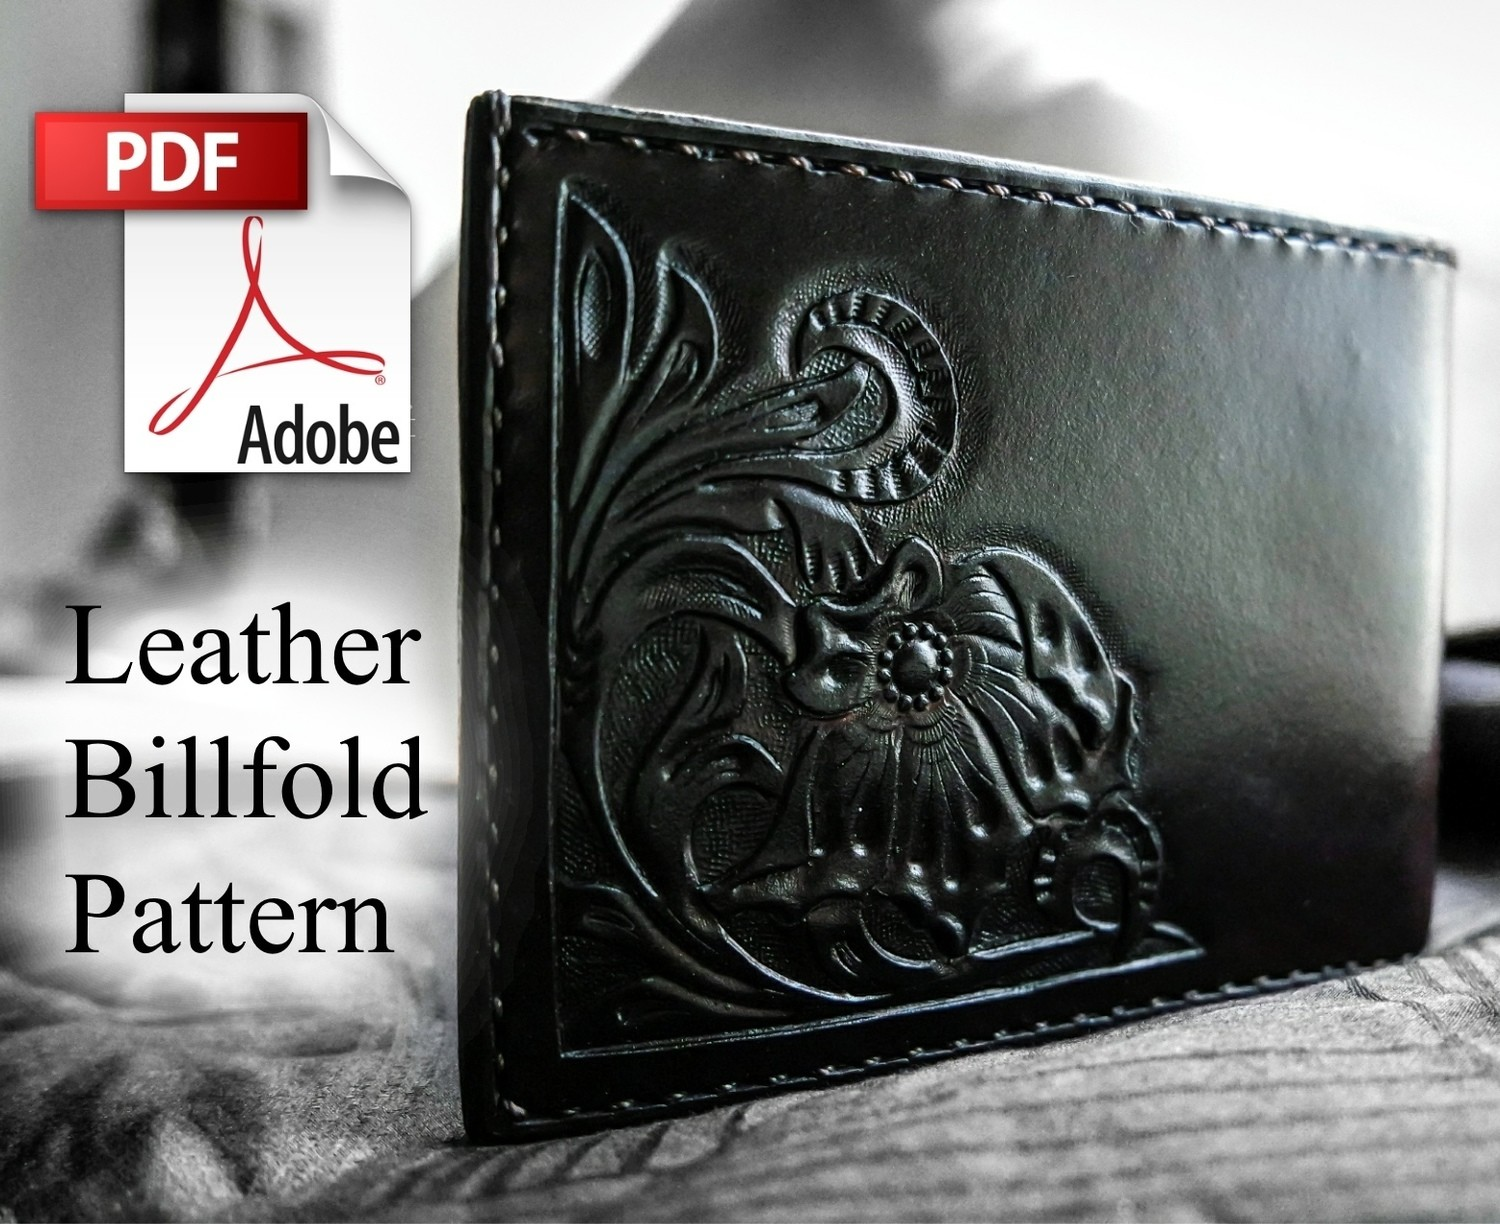 FW Leather Billfold Instructions and Pattern download